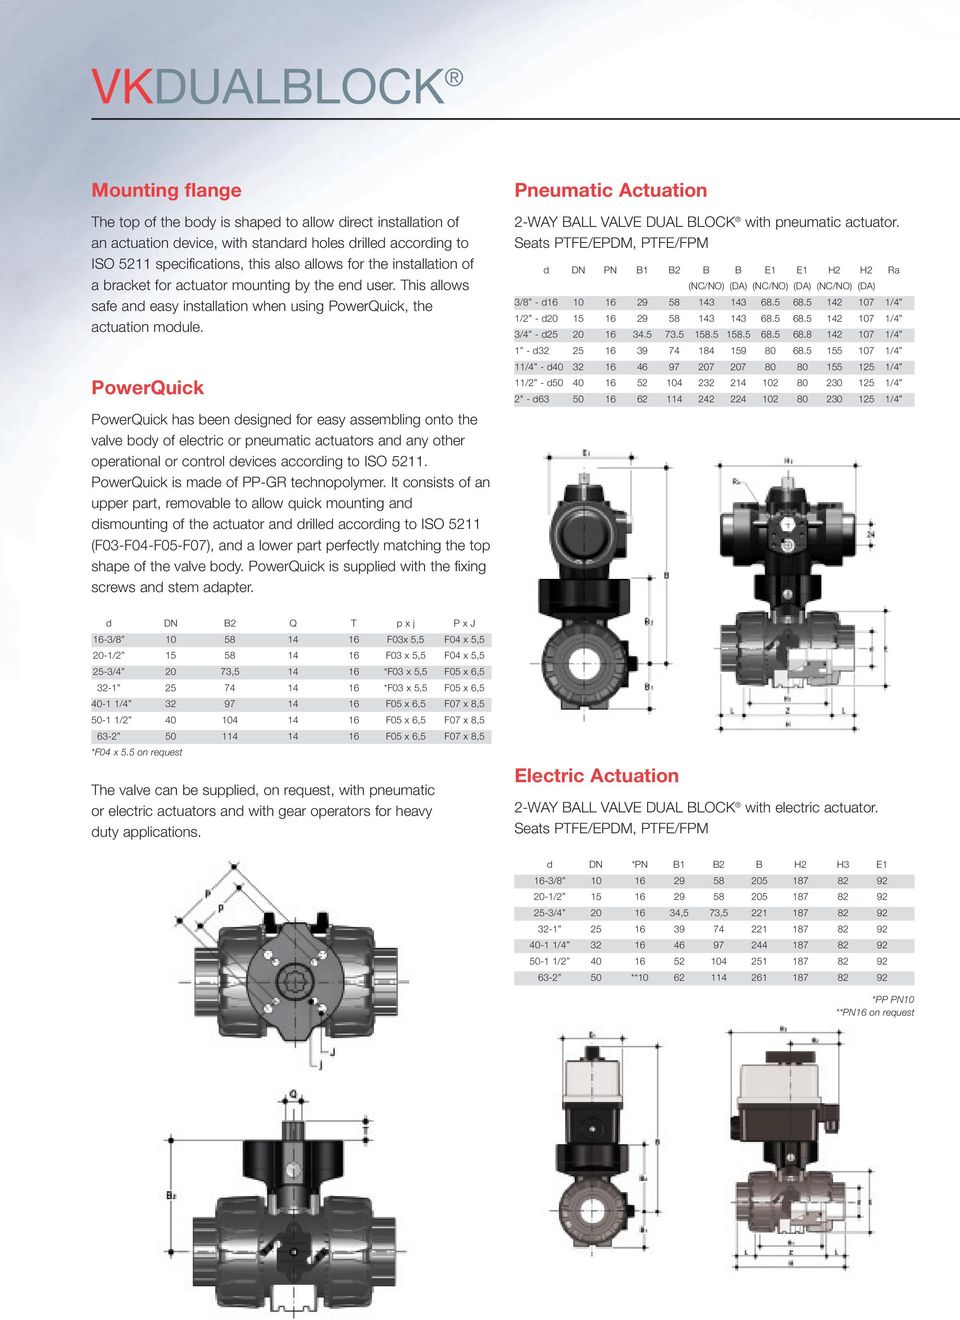 PowerQuick PowerQuick has been designed for easy assembling onto the valve body of electric or pneumatic actuators and any other operational or control devices according to ISO 5211.